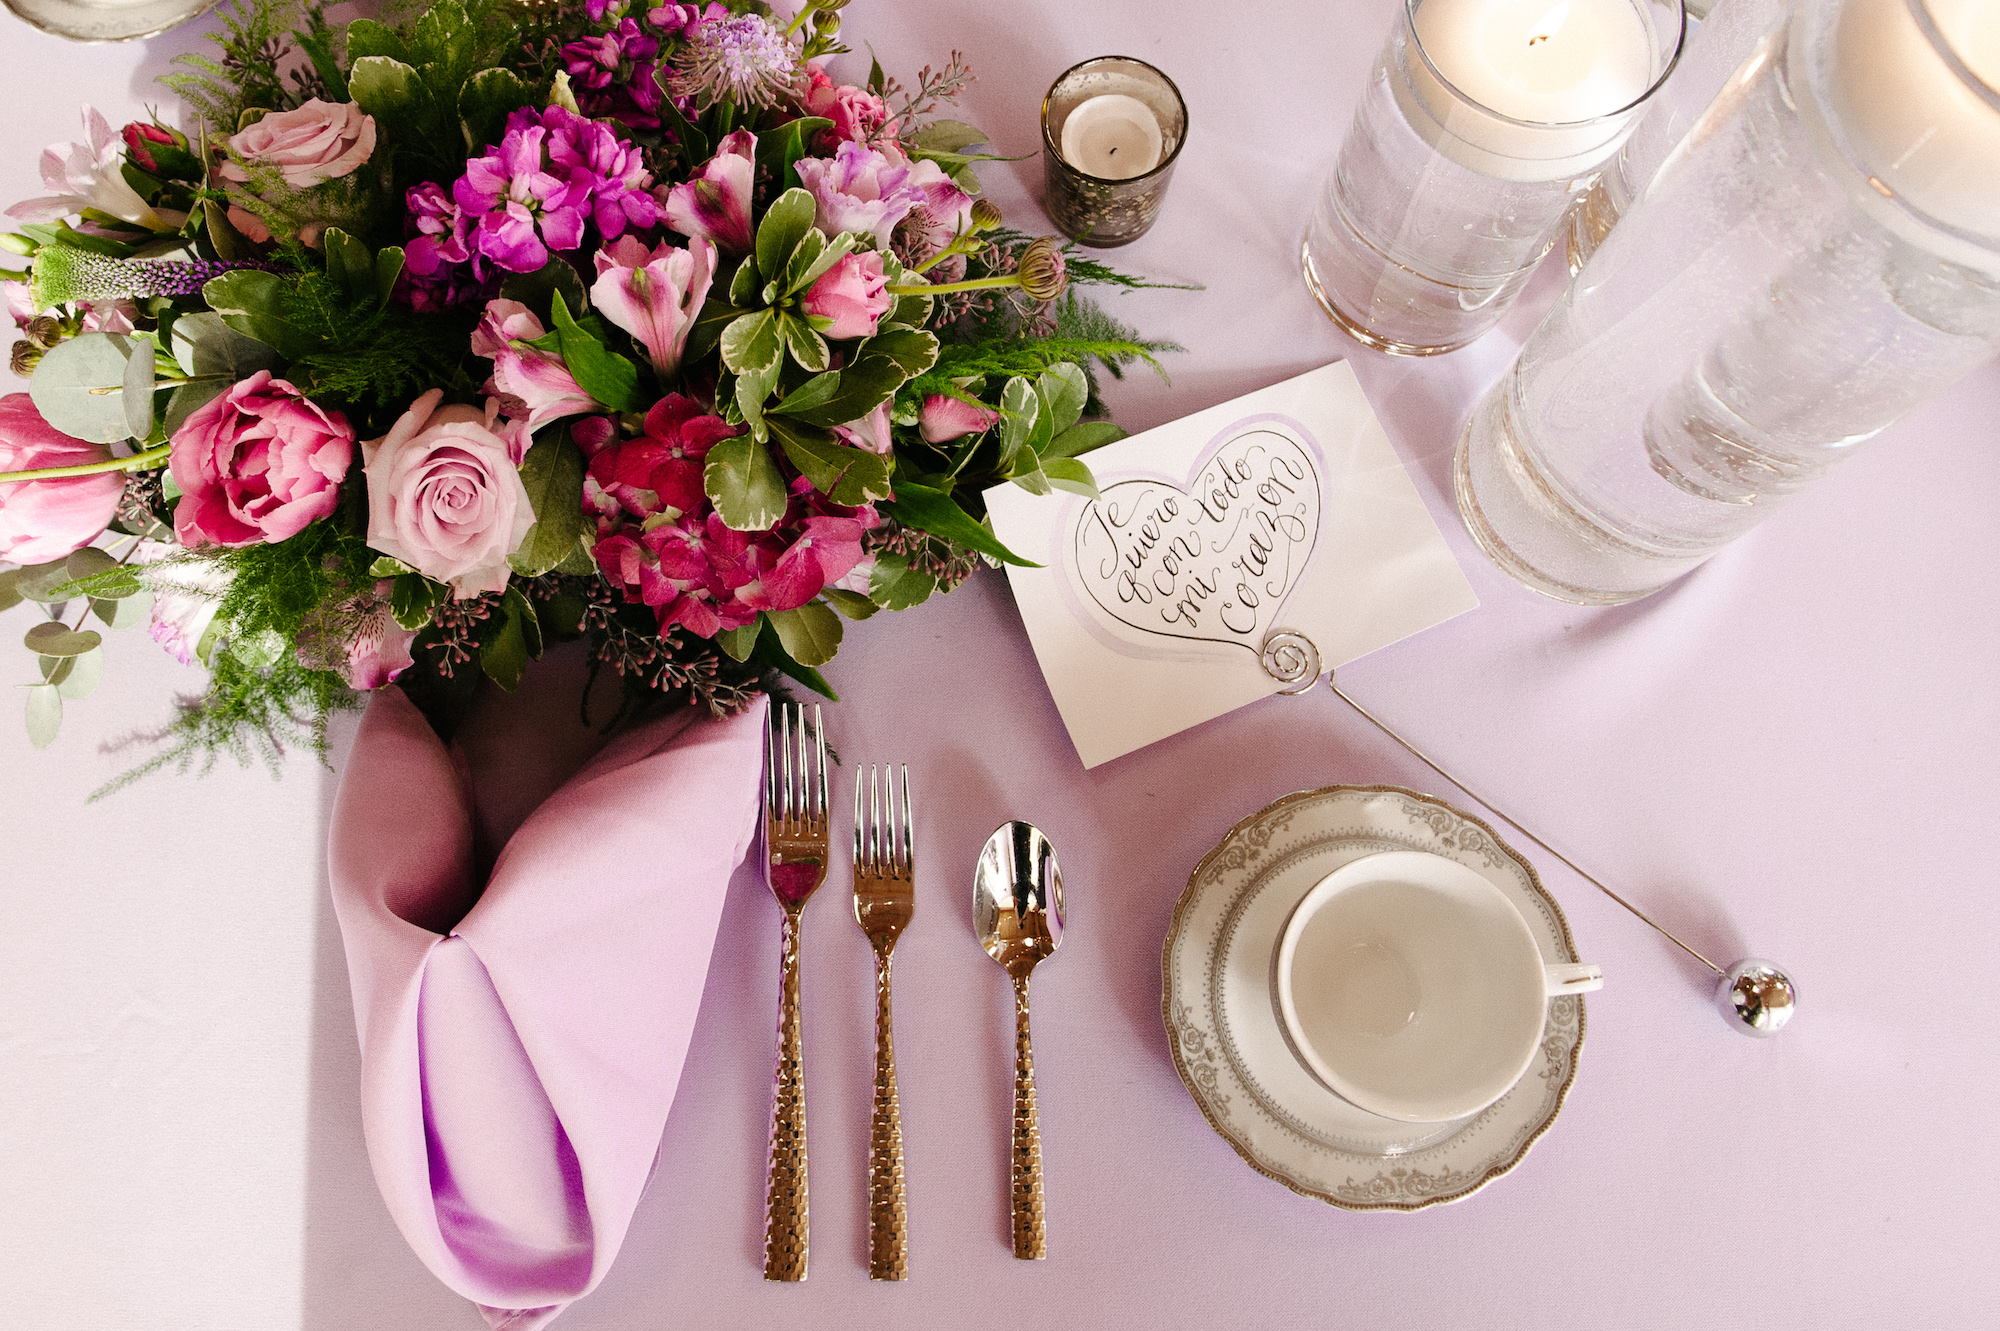 place setting without a place but with a triangle fold napkin   Dillinger Studios Minneapolis Photographer   Mexican American fusion wedding   Sixpence Events & Planning Minnesota wedding planner .jpg